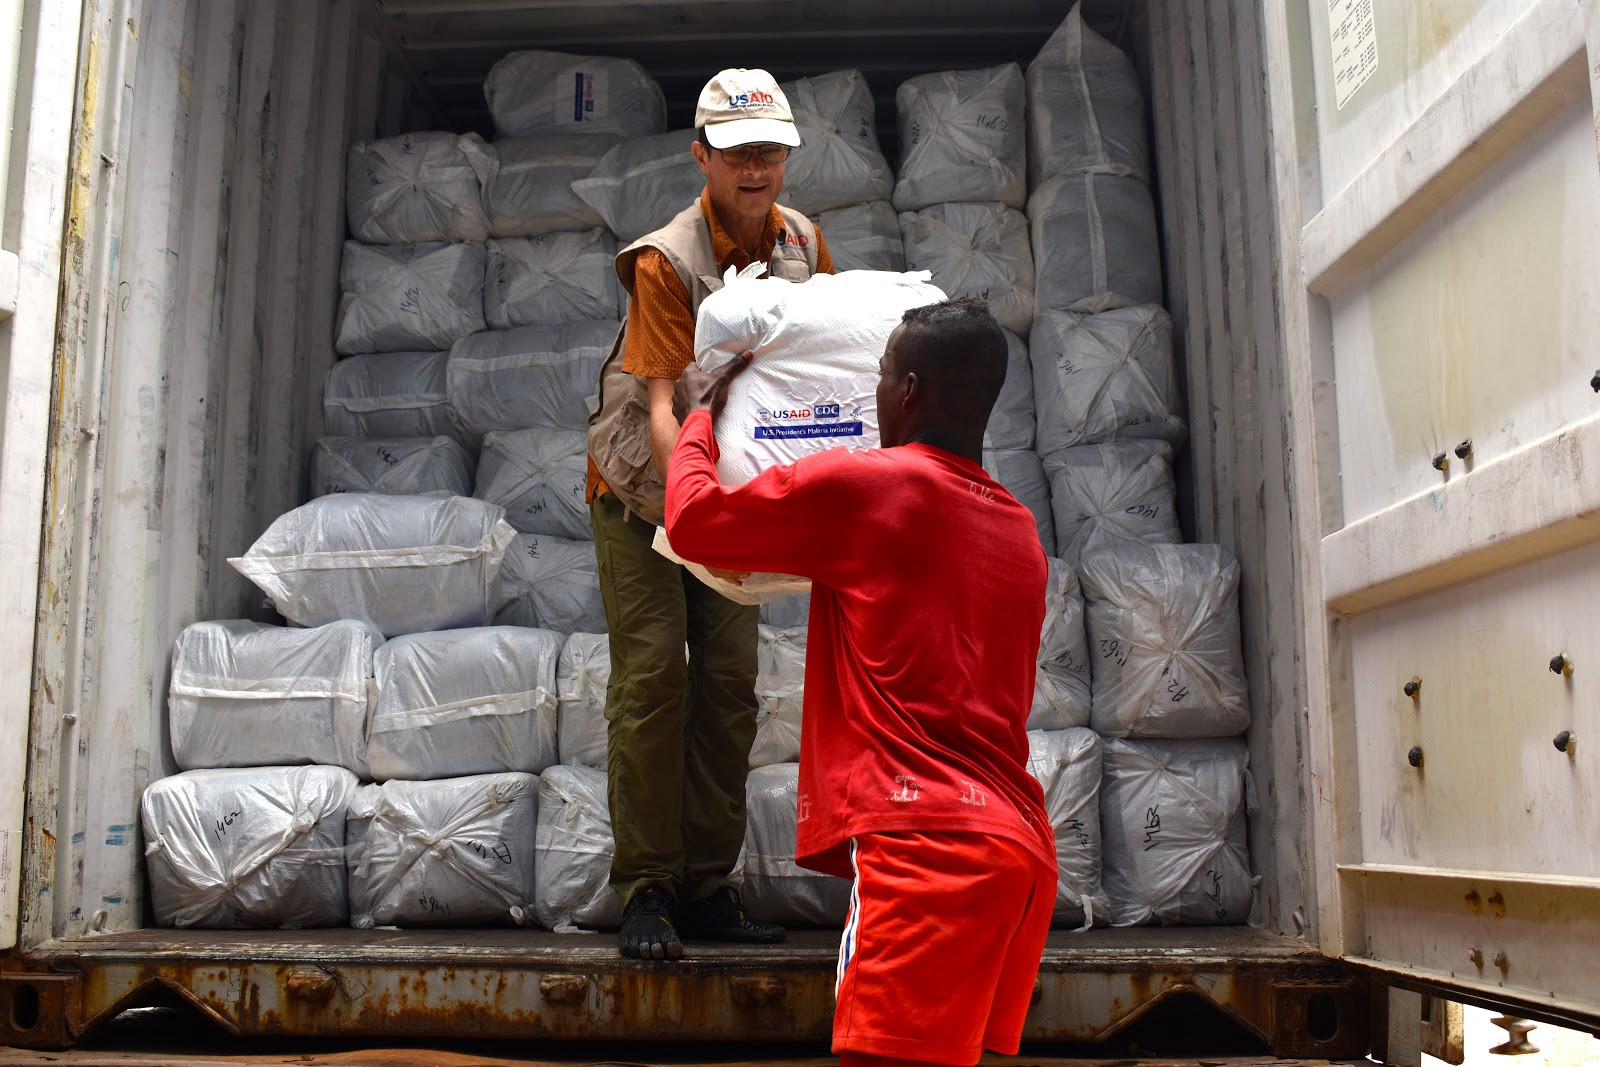 Bed nets are off-loaded from trucks into a warehouse in Antananarivo. / Anne Daugherty, USAID Madagascar